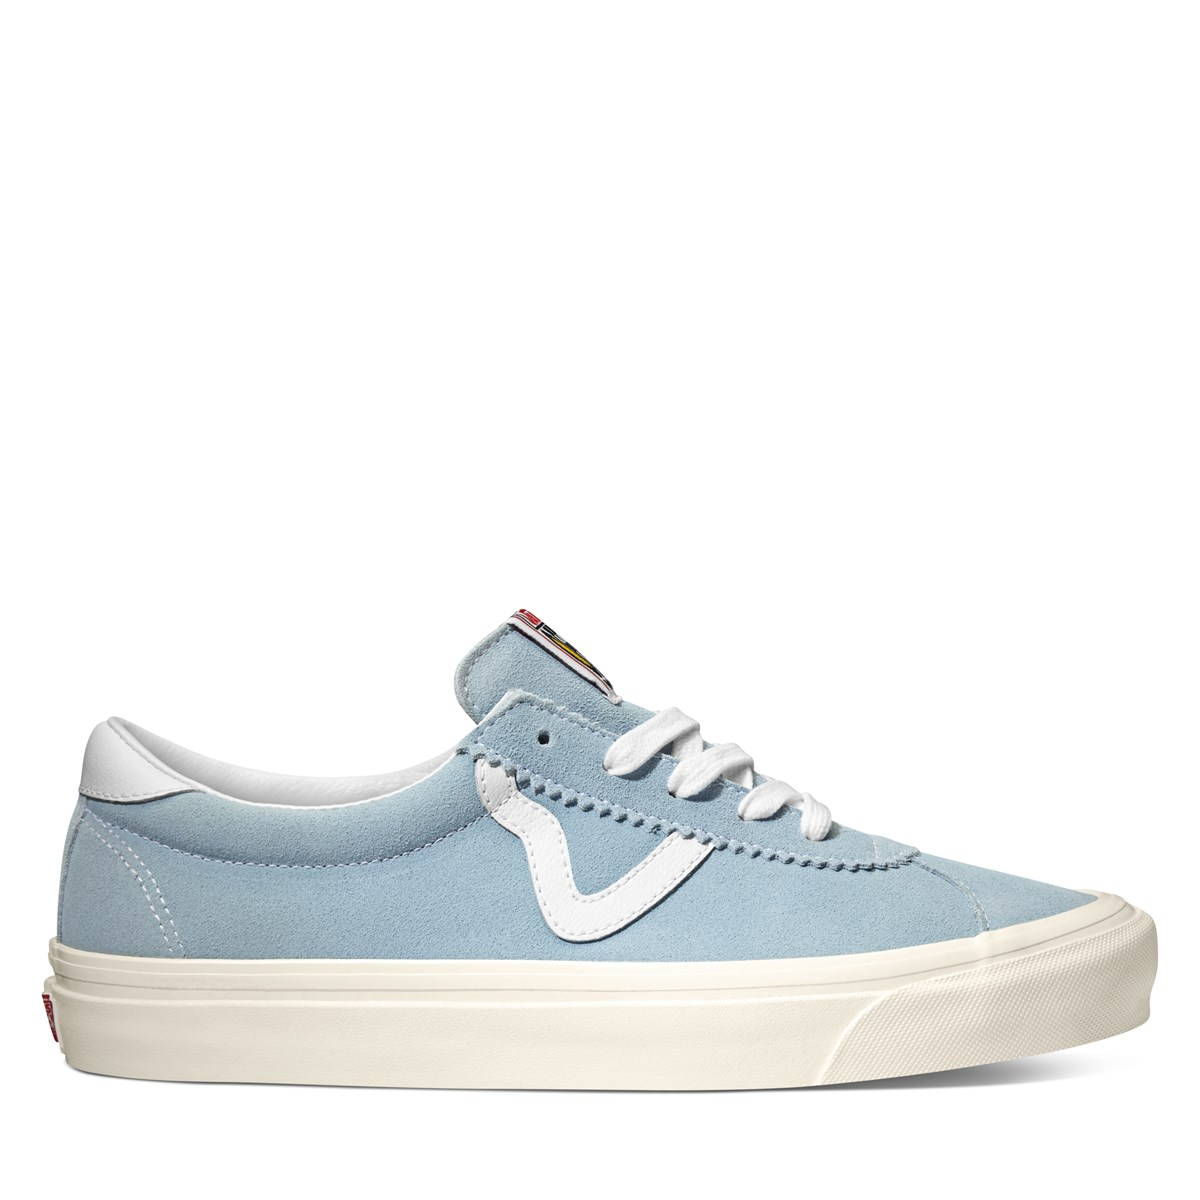 Anaheim Factory Style 73 DX Sneaker in Blue